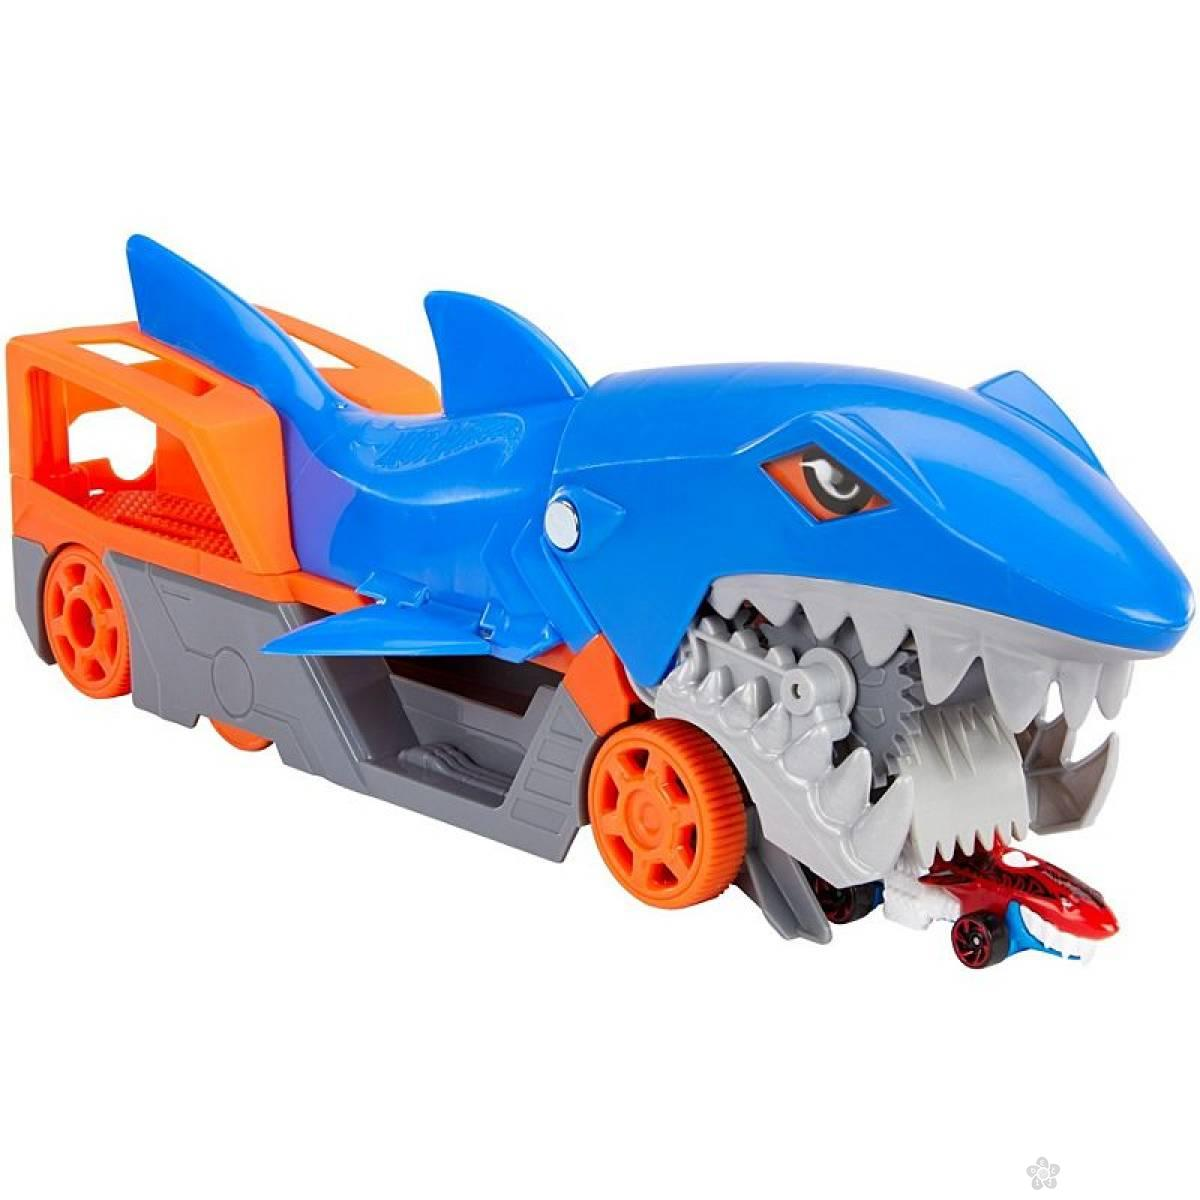 Hot Wheels Ajkula transporter GVG36